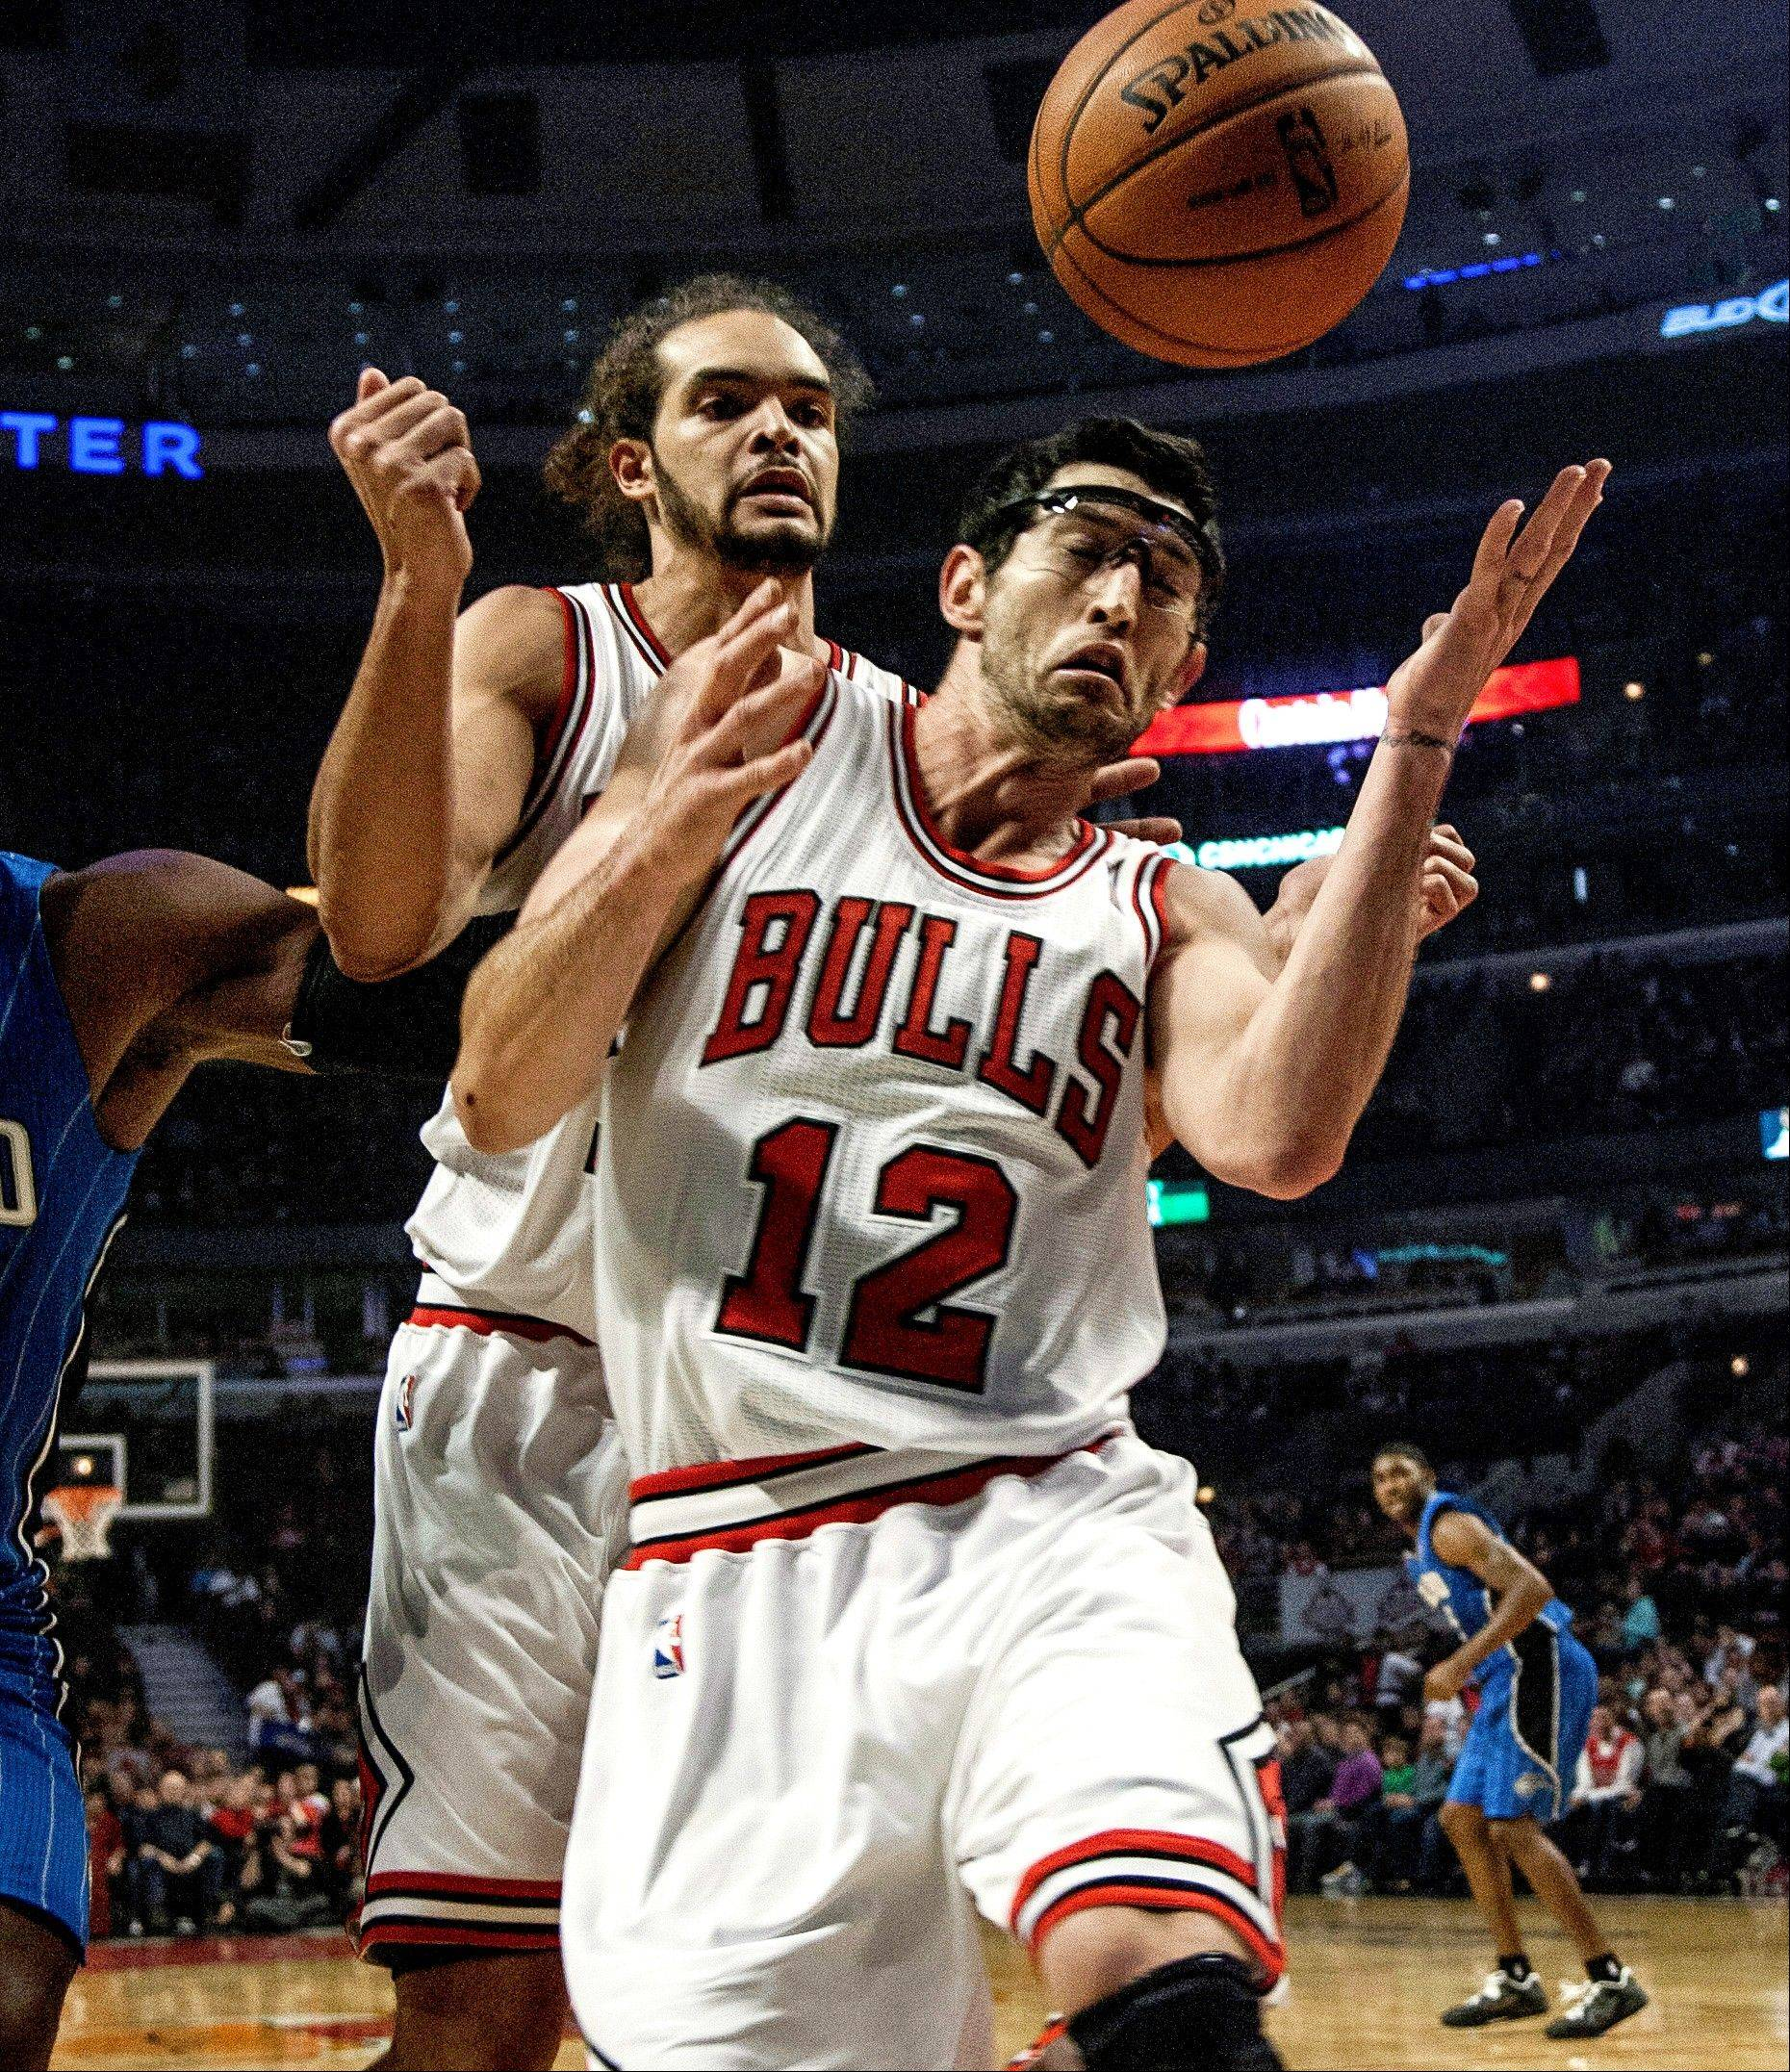 Kirk Hinrich (12) and Joakim Noah try to save the ball from going out of bounds during the first quarter of the Bulls' win Tuesday night at the United Center.